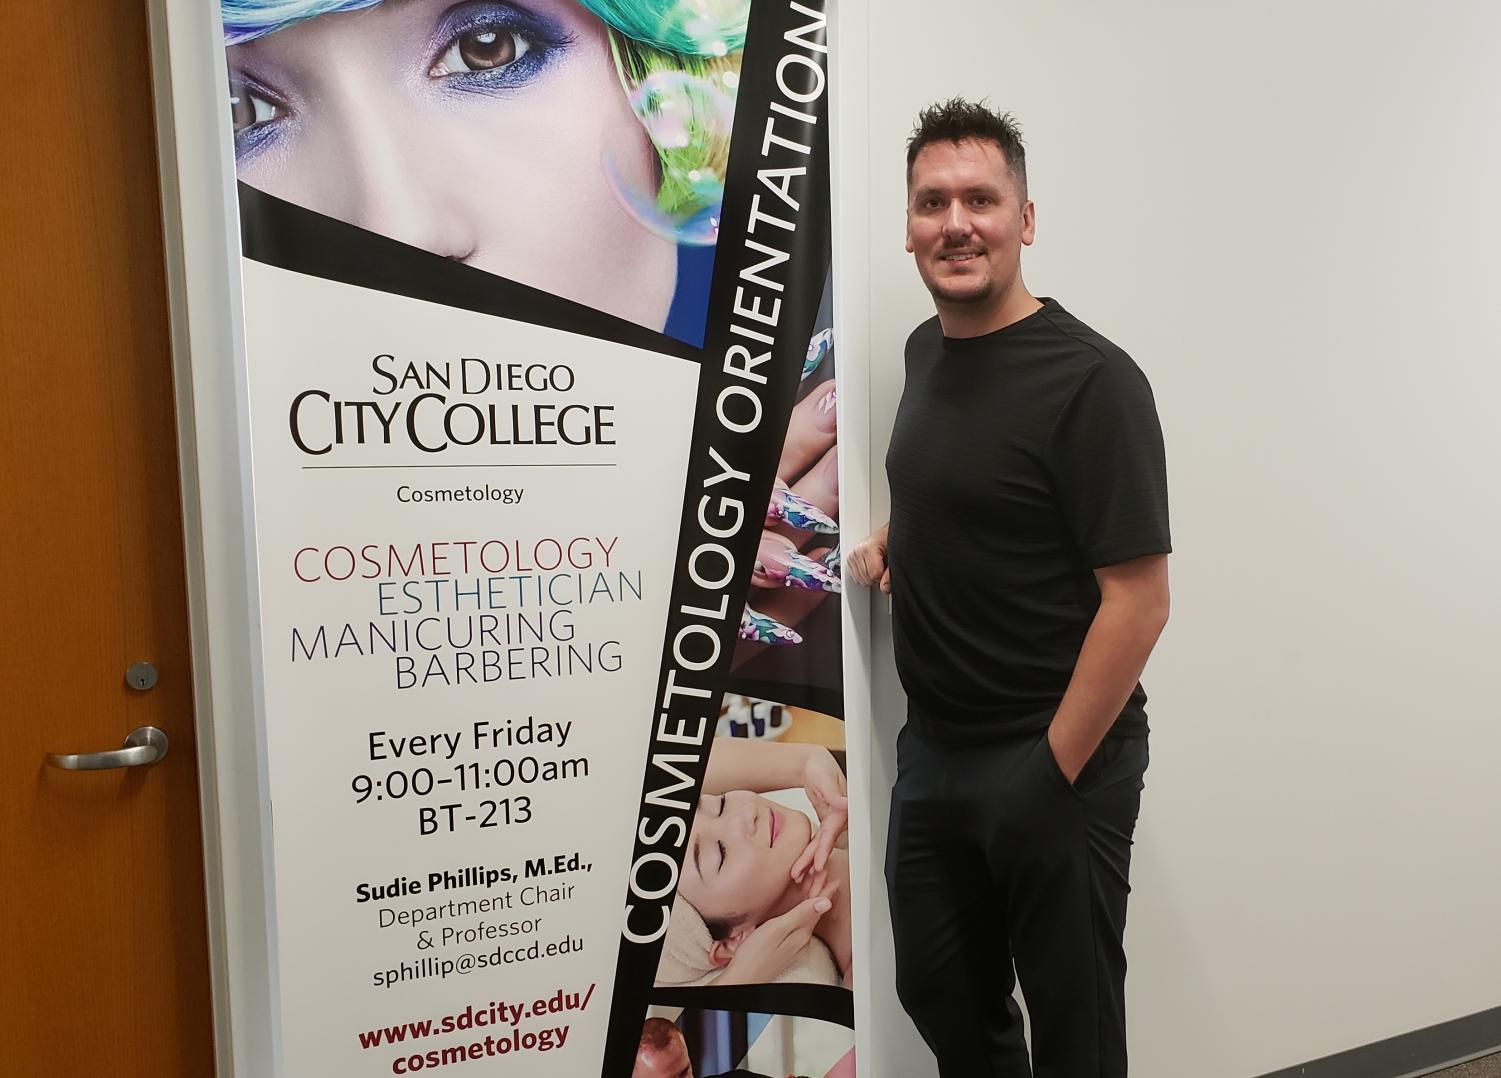 Michael Celatka uses his knowledge of business to further the Cosmetology Program. Photo by Angel Cazares